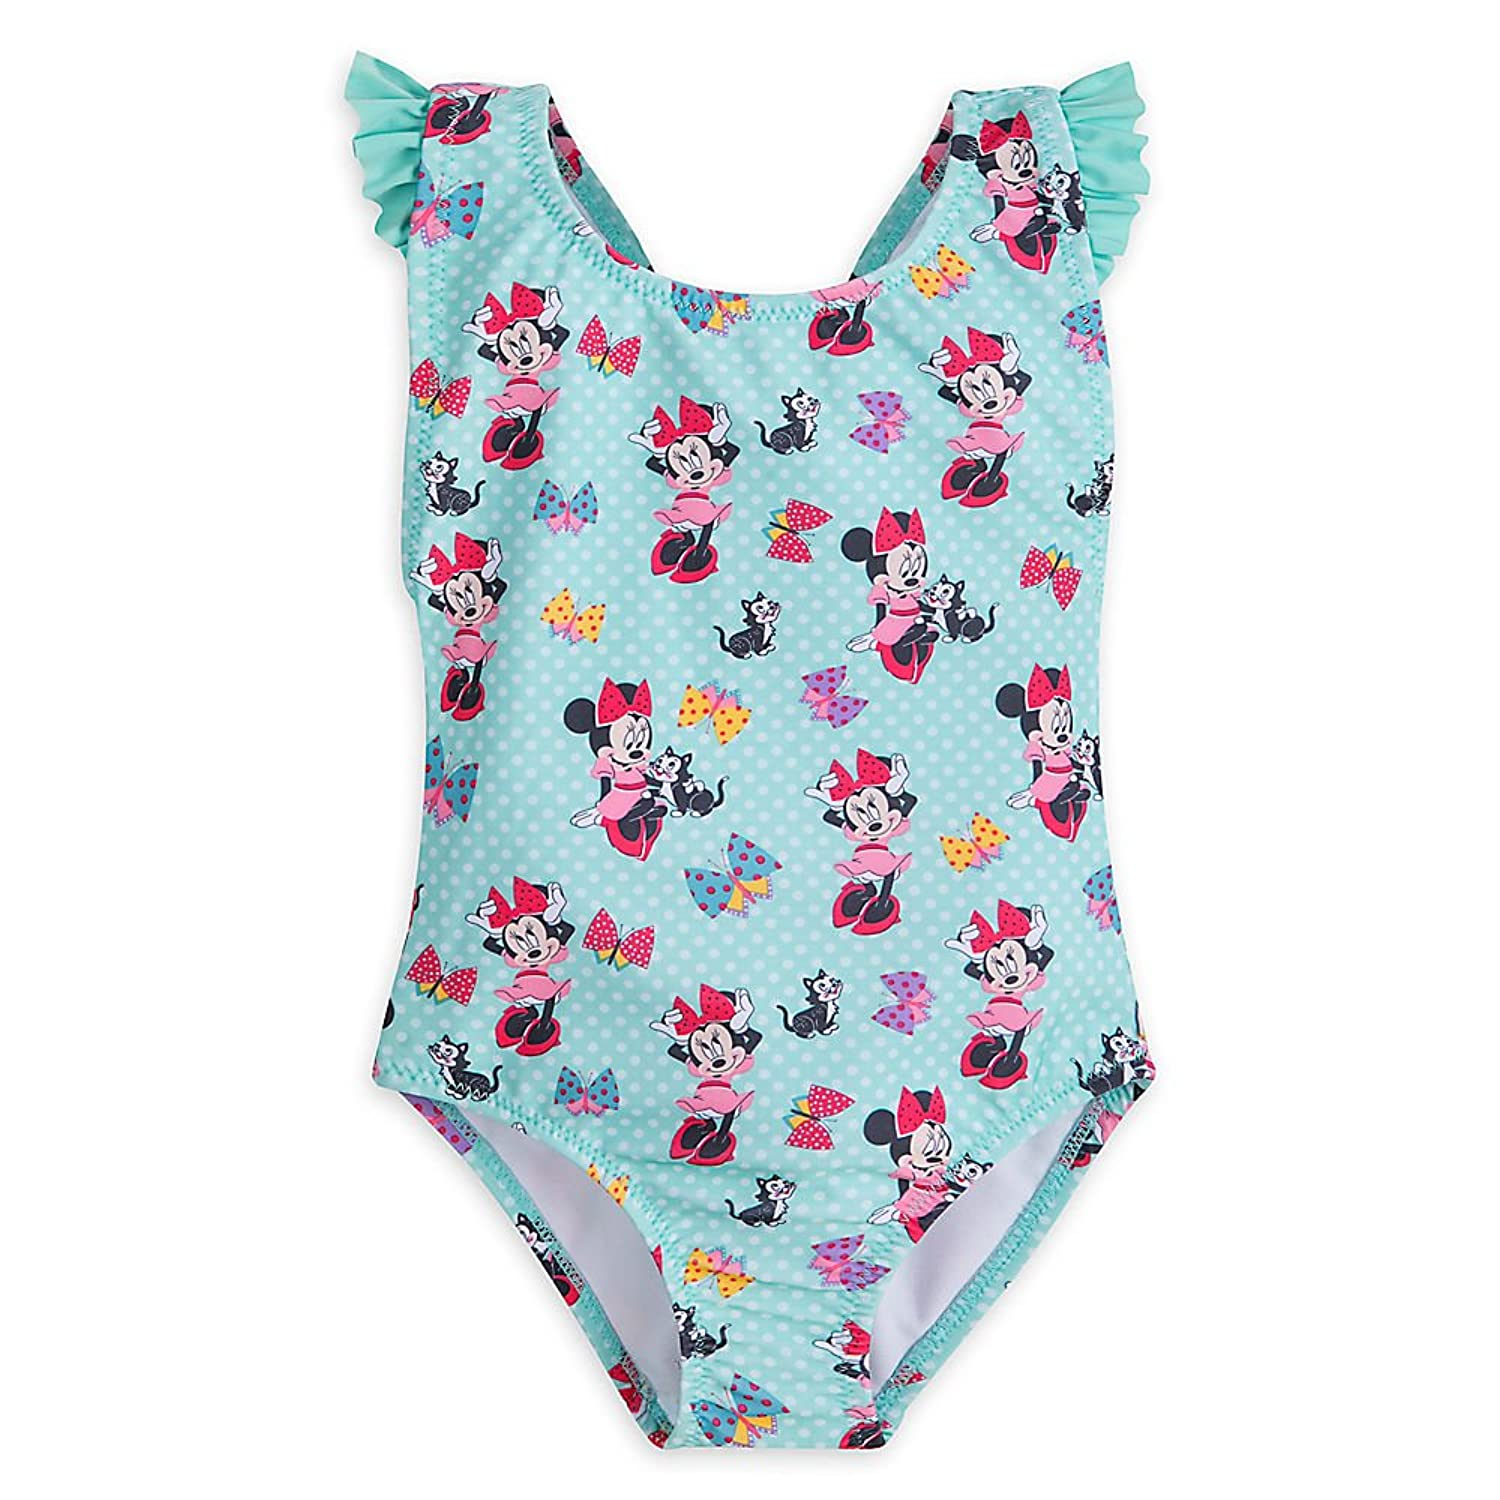 Amazon.com: Disney Minnie Mouse and Figaro Swimsuit For Girls: Clothing